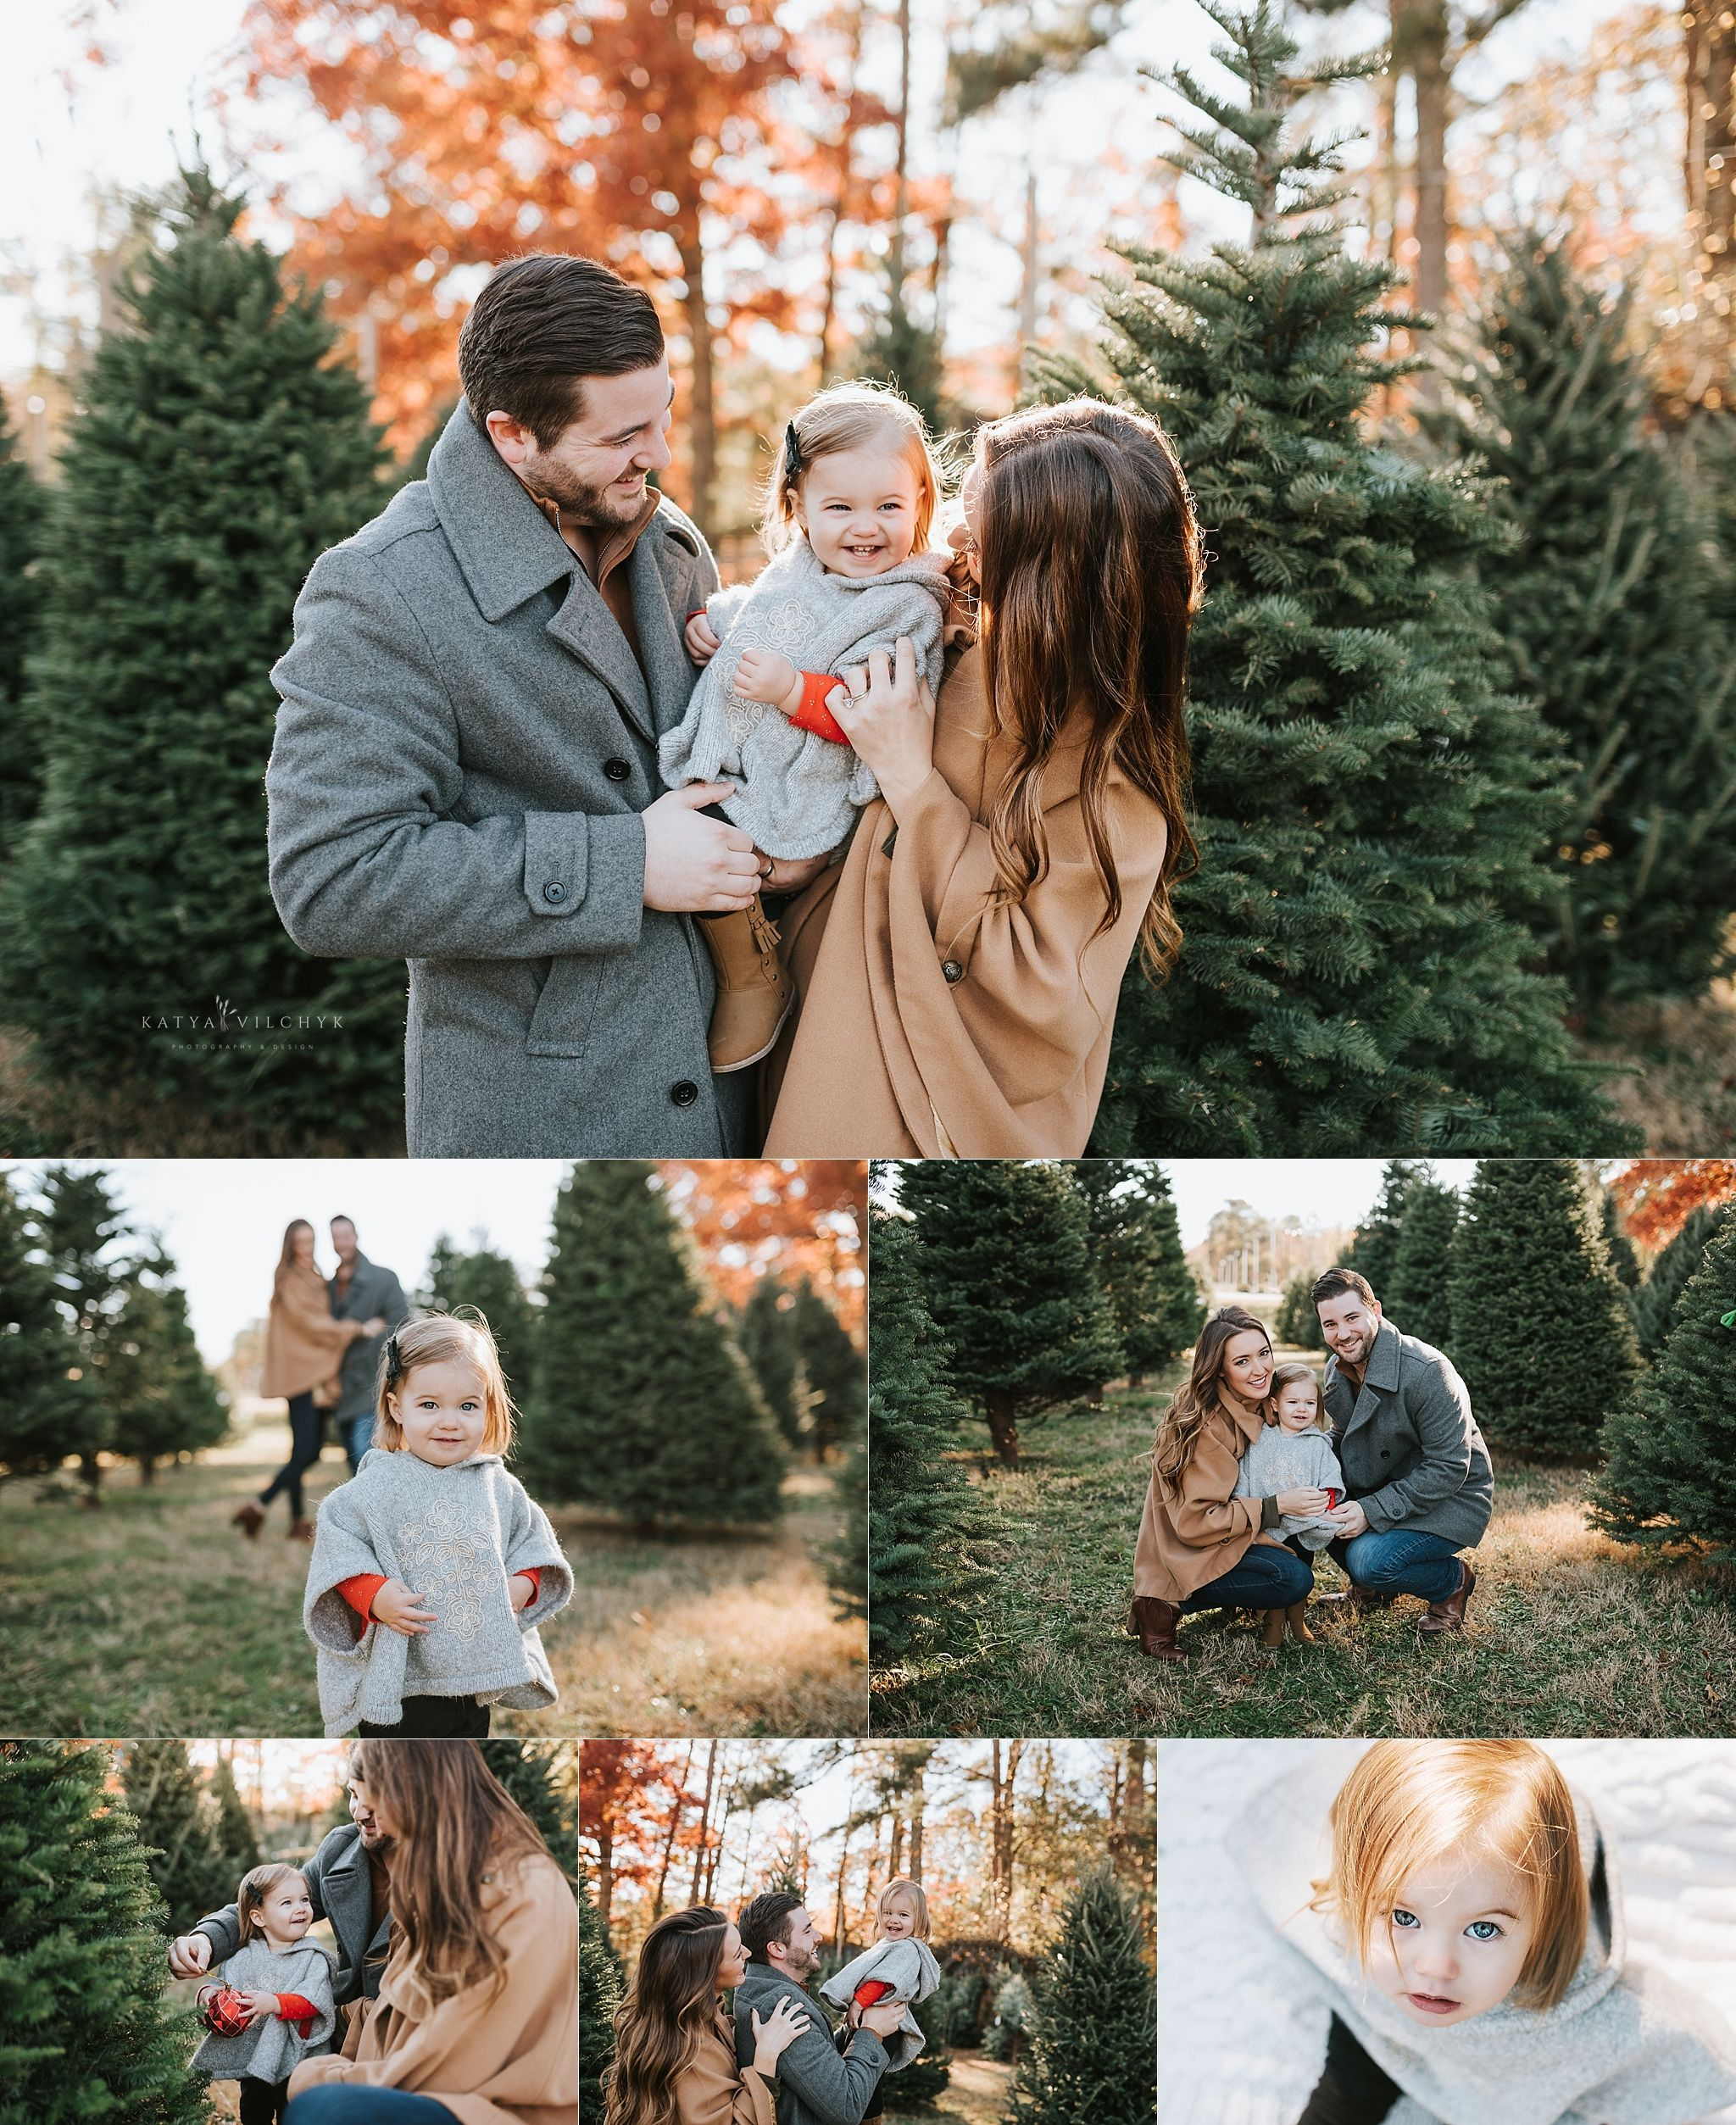 Christmas Tree Farm Family Photography Ideas For Family Posing Tree F Christmas Tree Farm Pictures Christmas Tree Farm Photos Christmas Tree Farm Photo Shoot